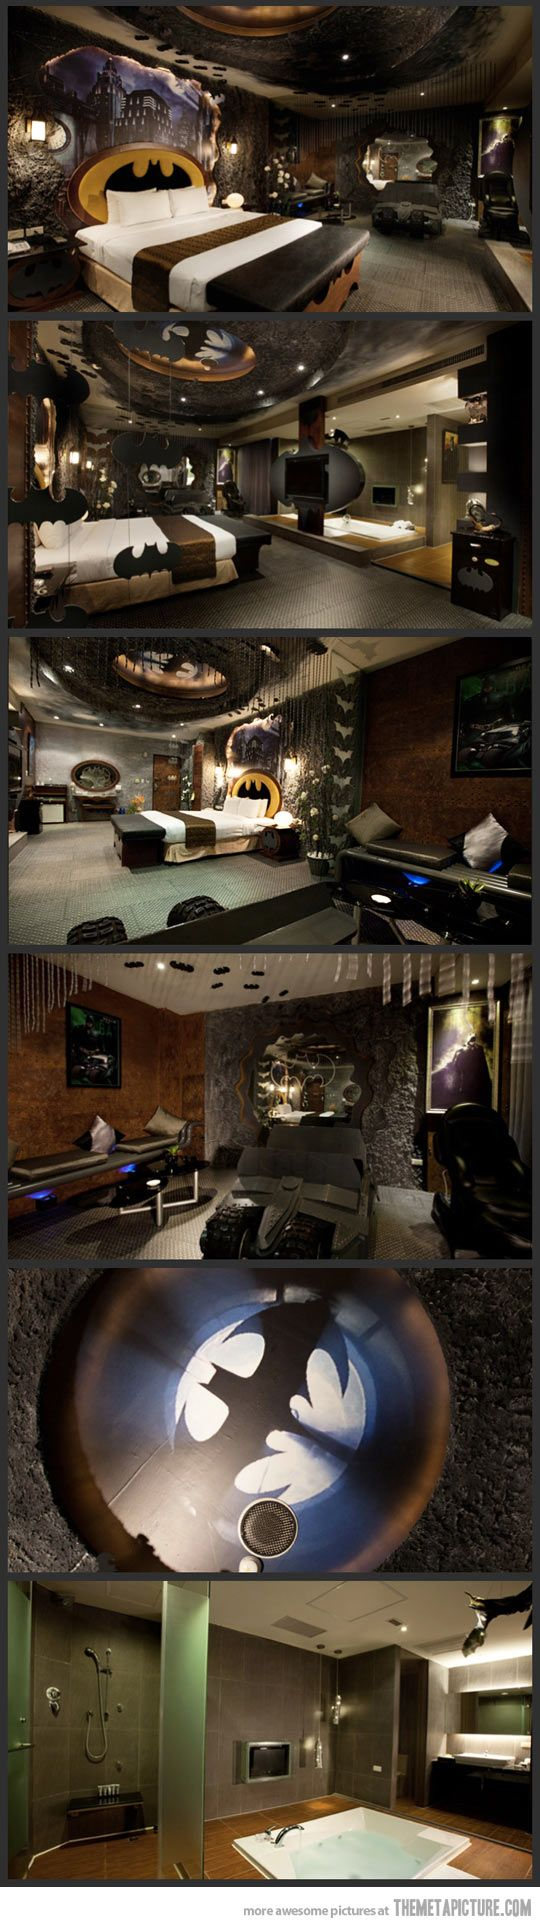 BATMAN HOTEL. WHAT?! awesome!